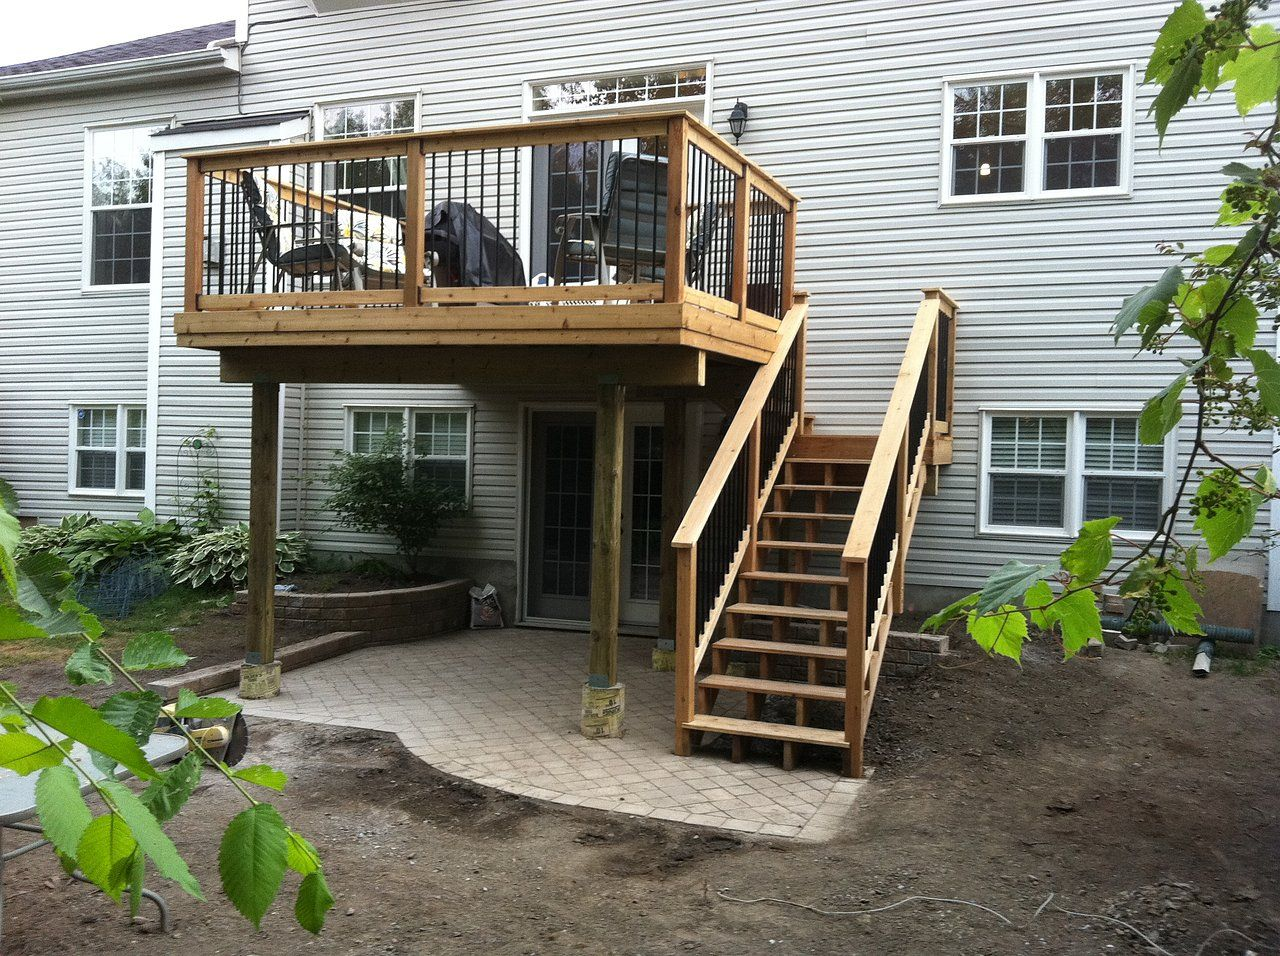 Attaching deck to house with siding - 2nd Story Deck Stairs Cec20e_60ff79d971eb106e149a2a151a3d7e9c Jpg